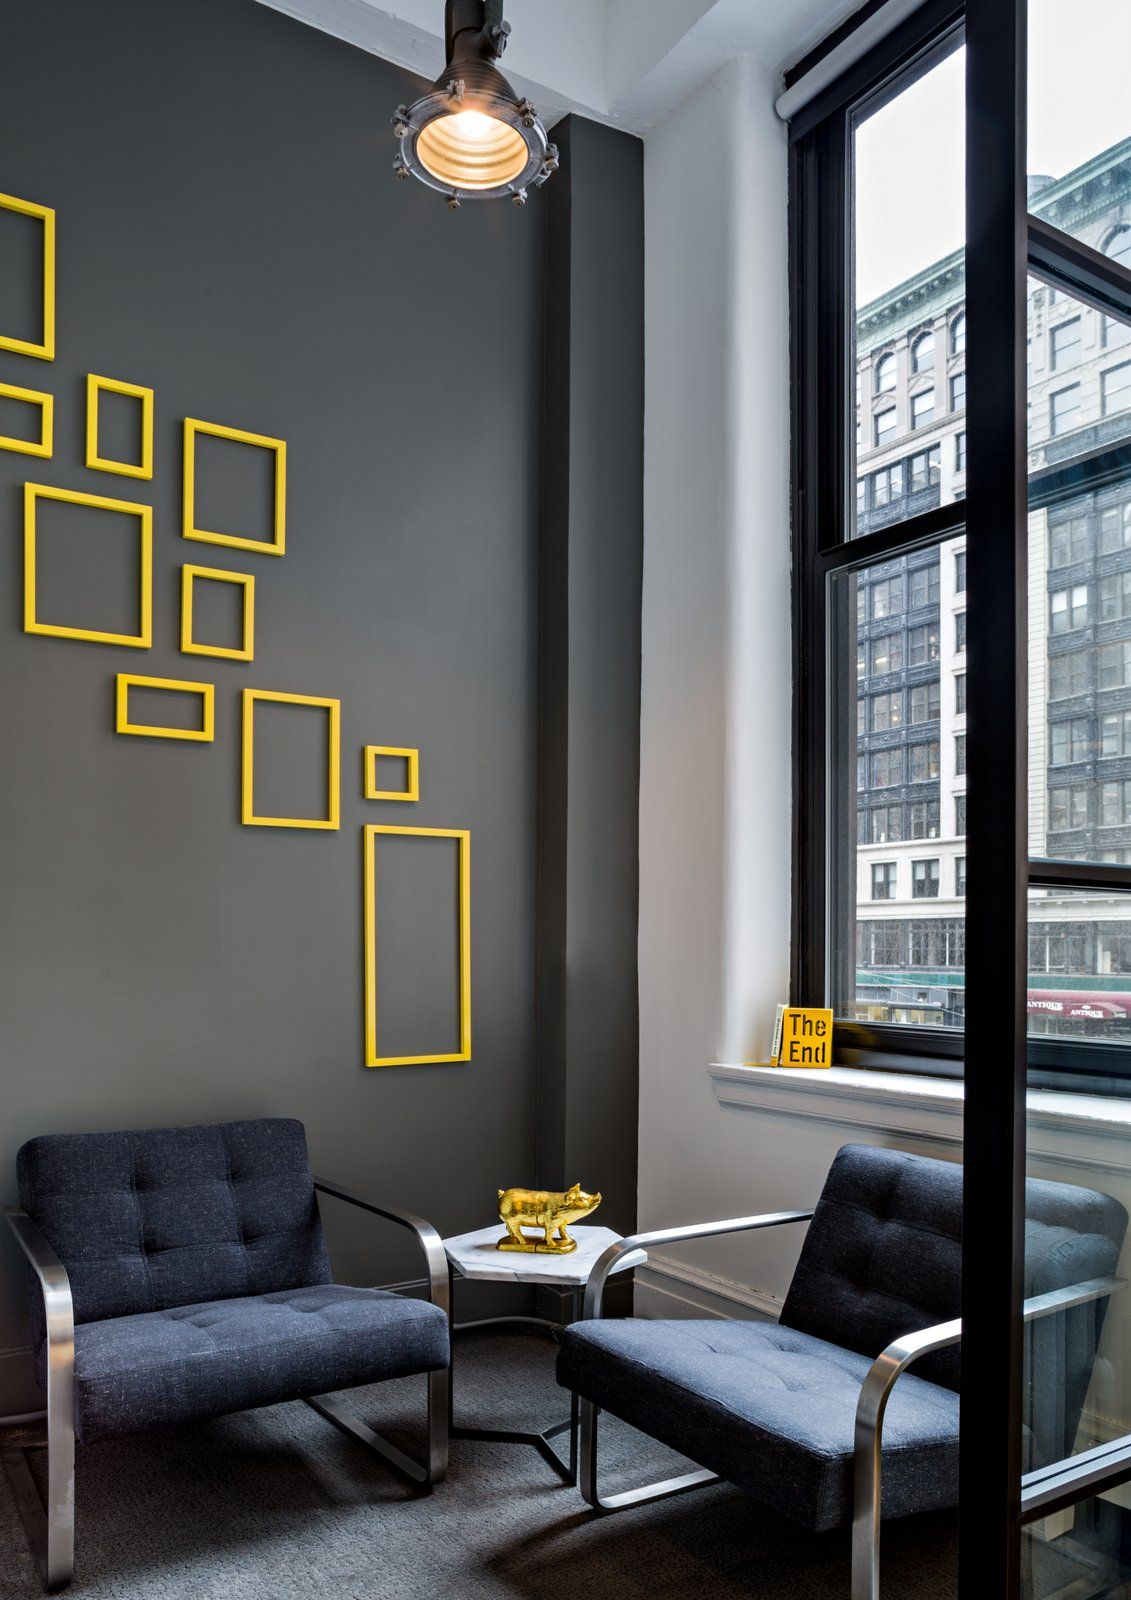 Daily Burn Offices New York City Office Snapshots Contemporary Home Decor Wall Design Office Interior Design